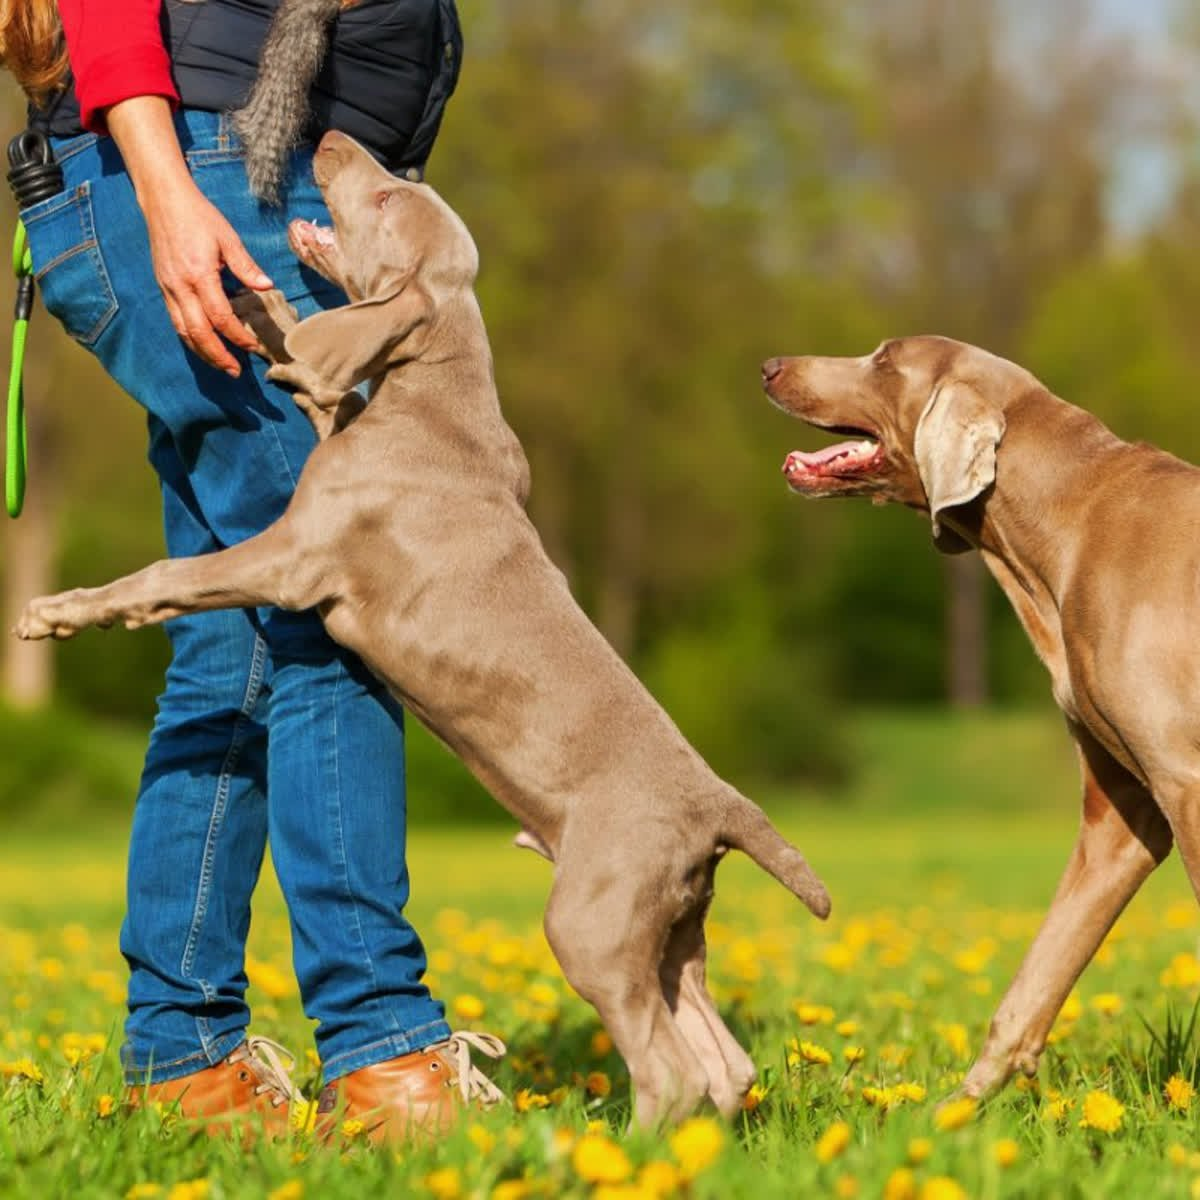 invisible fence greensburg pa meyer e47 wiring diagram pittsburgh pghpetservices twitter check out this article on getting your dog to stop jumping with the link below nojumping dogs invisiblefence http qoo ly ukwi2 pic com